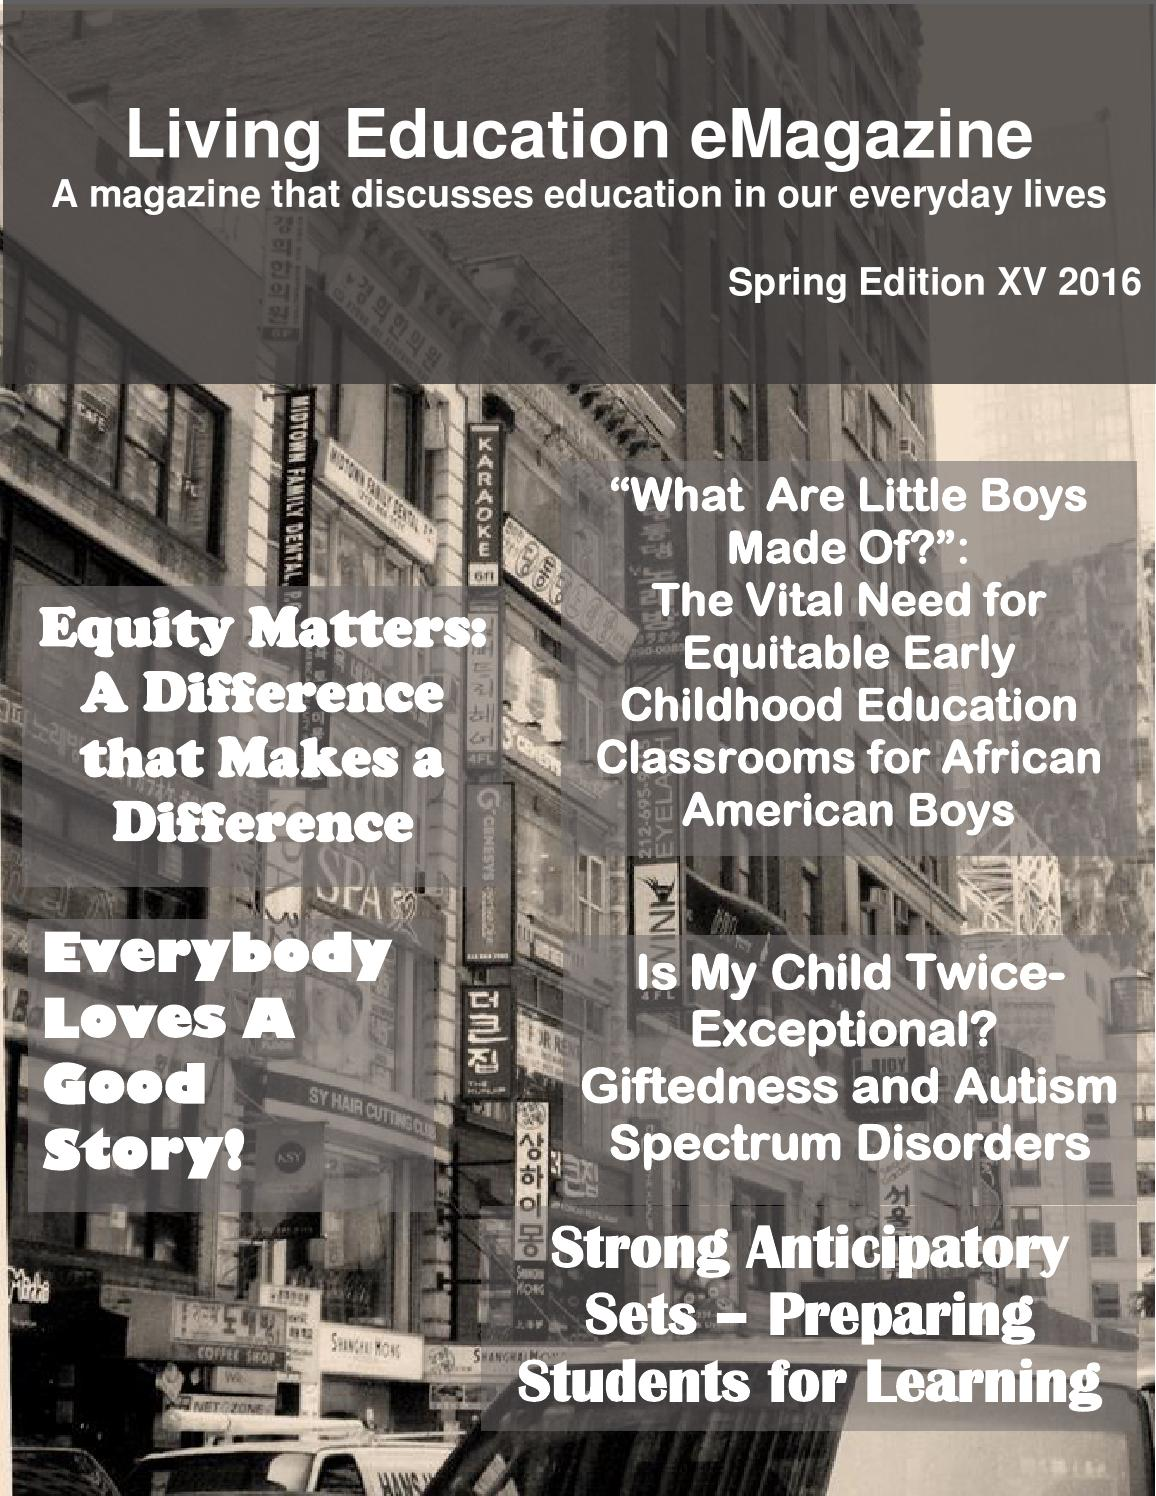 Gifted Ld Misdiagnosed And Misunderstood >> 2016 Spring Edition Of Living Education Emagazine Revised 3 22 16 By